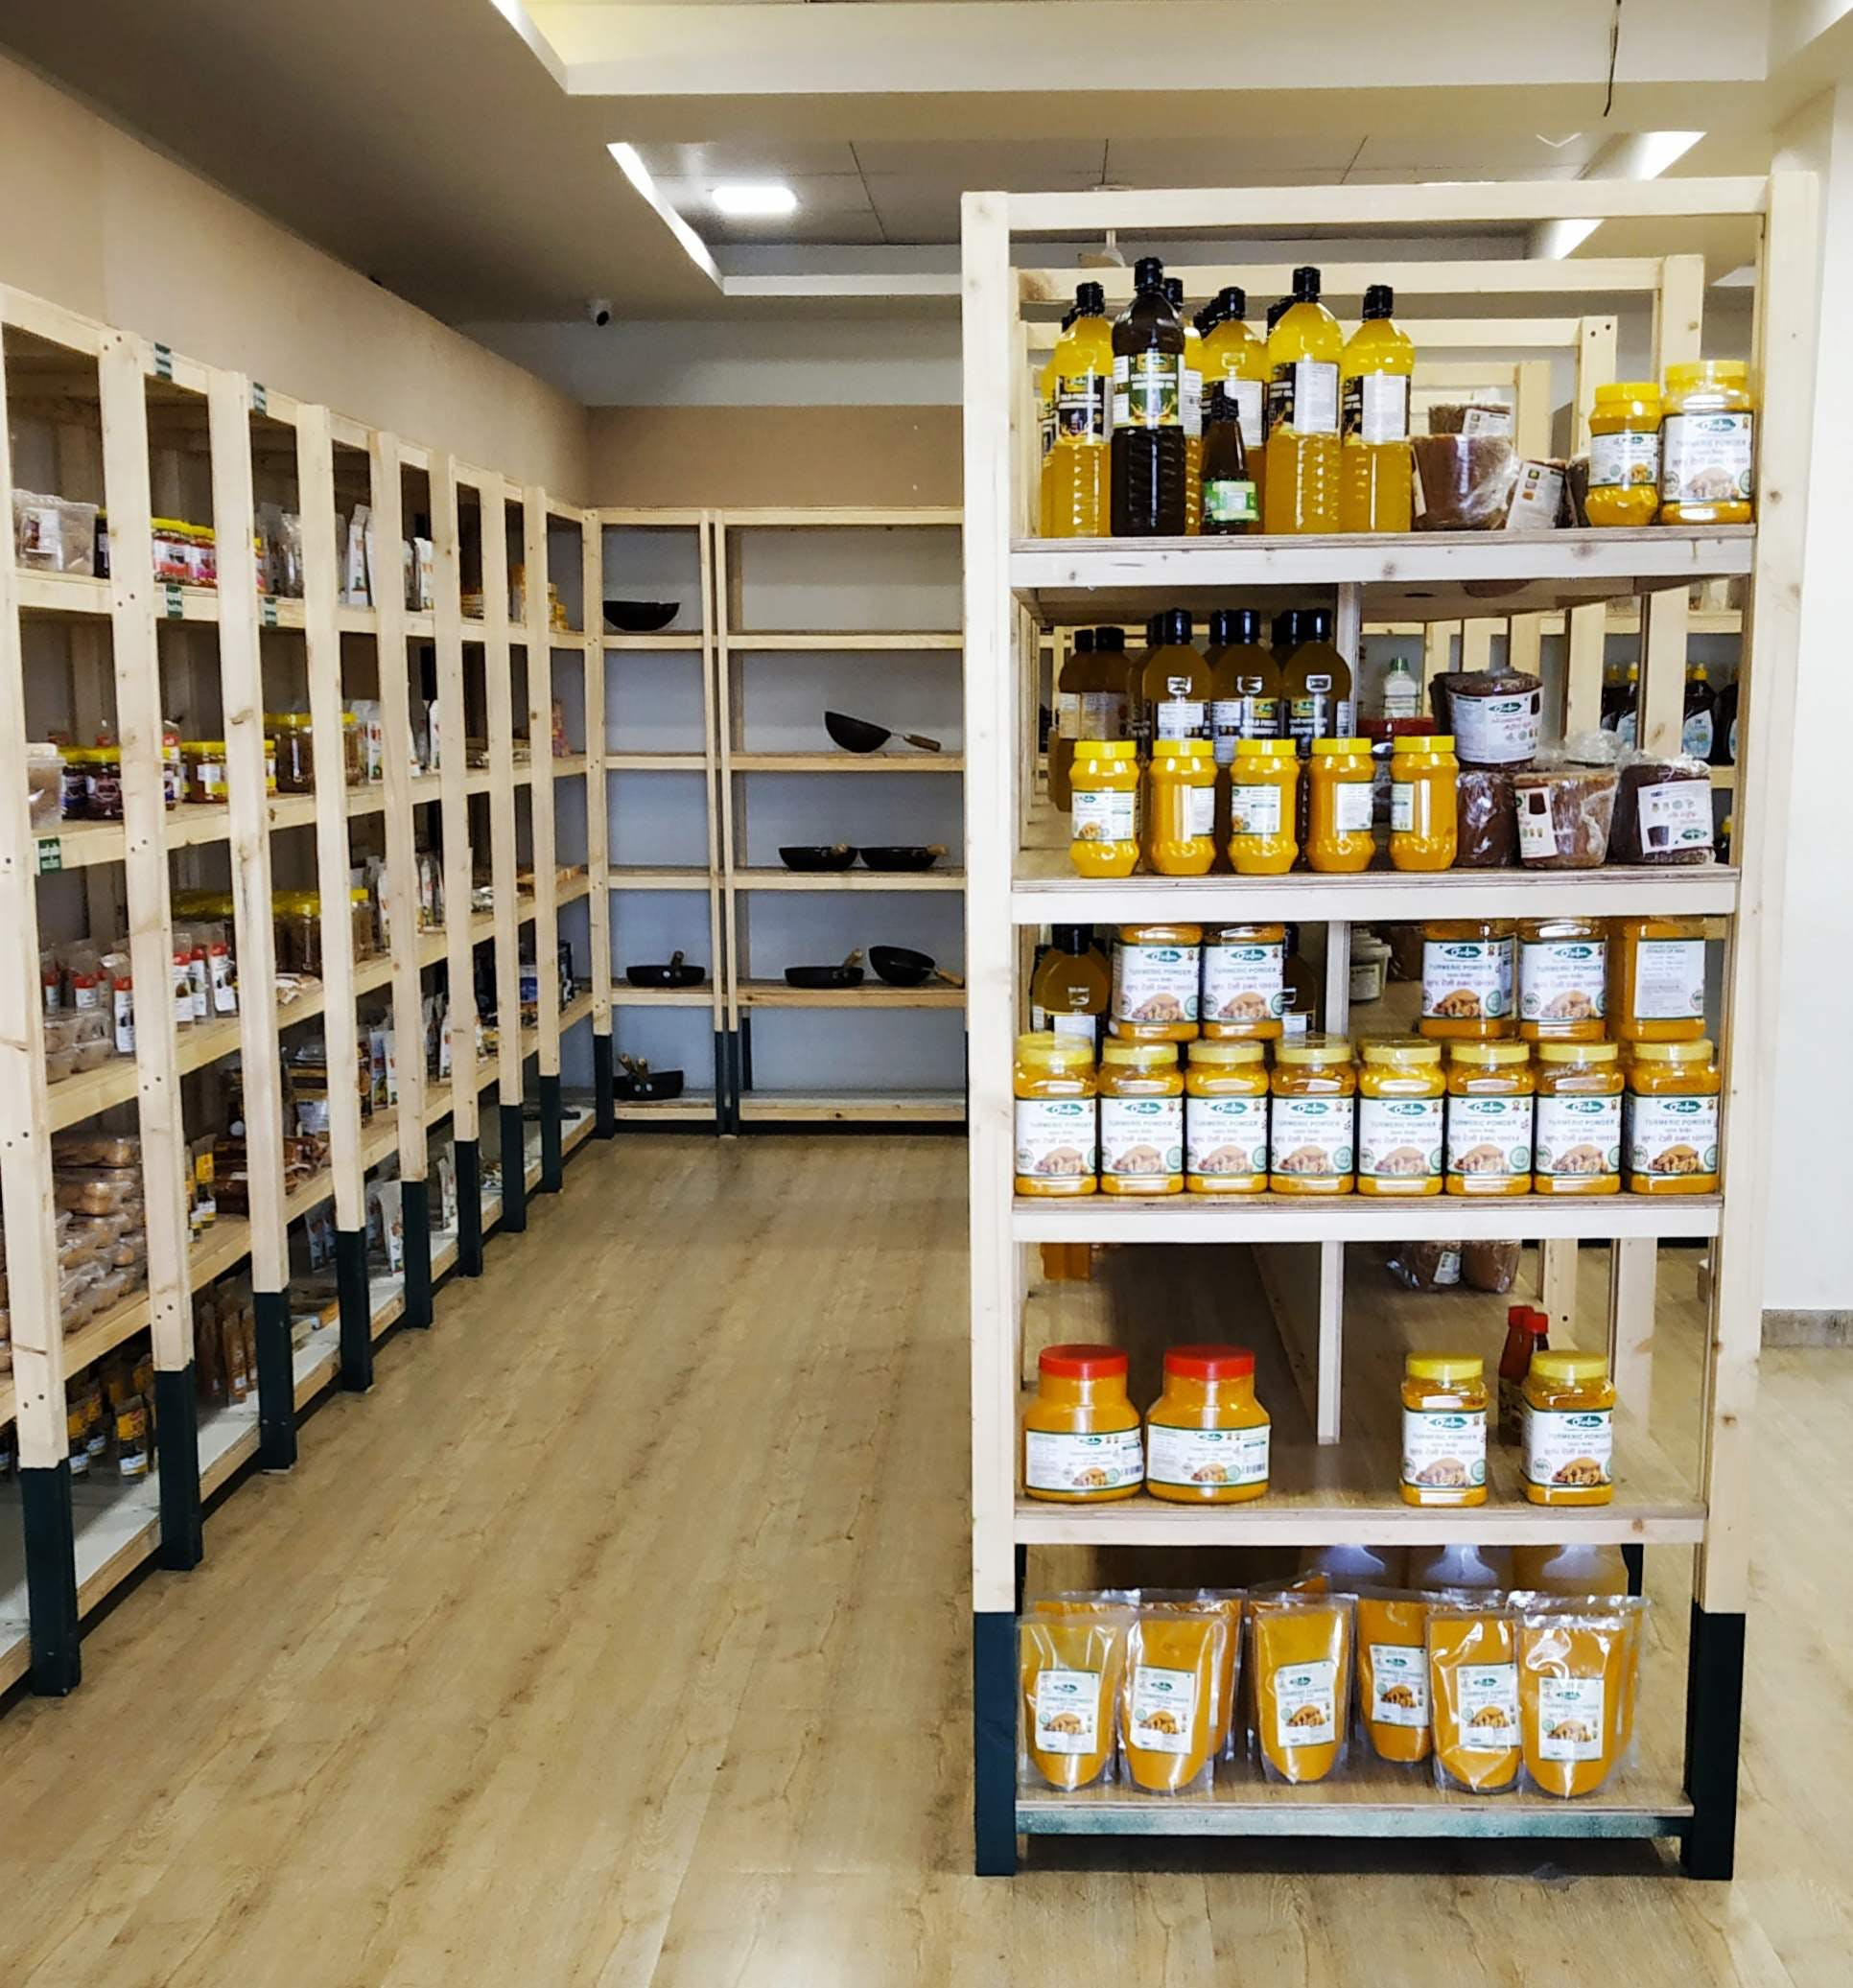 Shelf,Product,Shelving,Building,Liquor store,Retail,Inventory,Furniture,Grocery store,Pantry